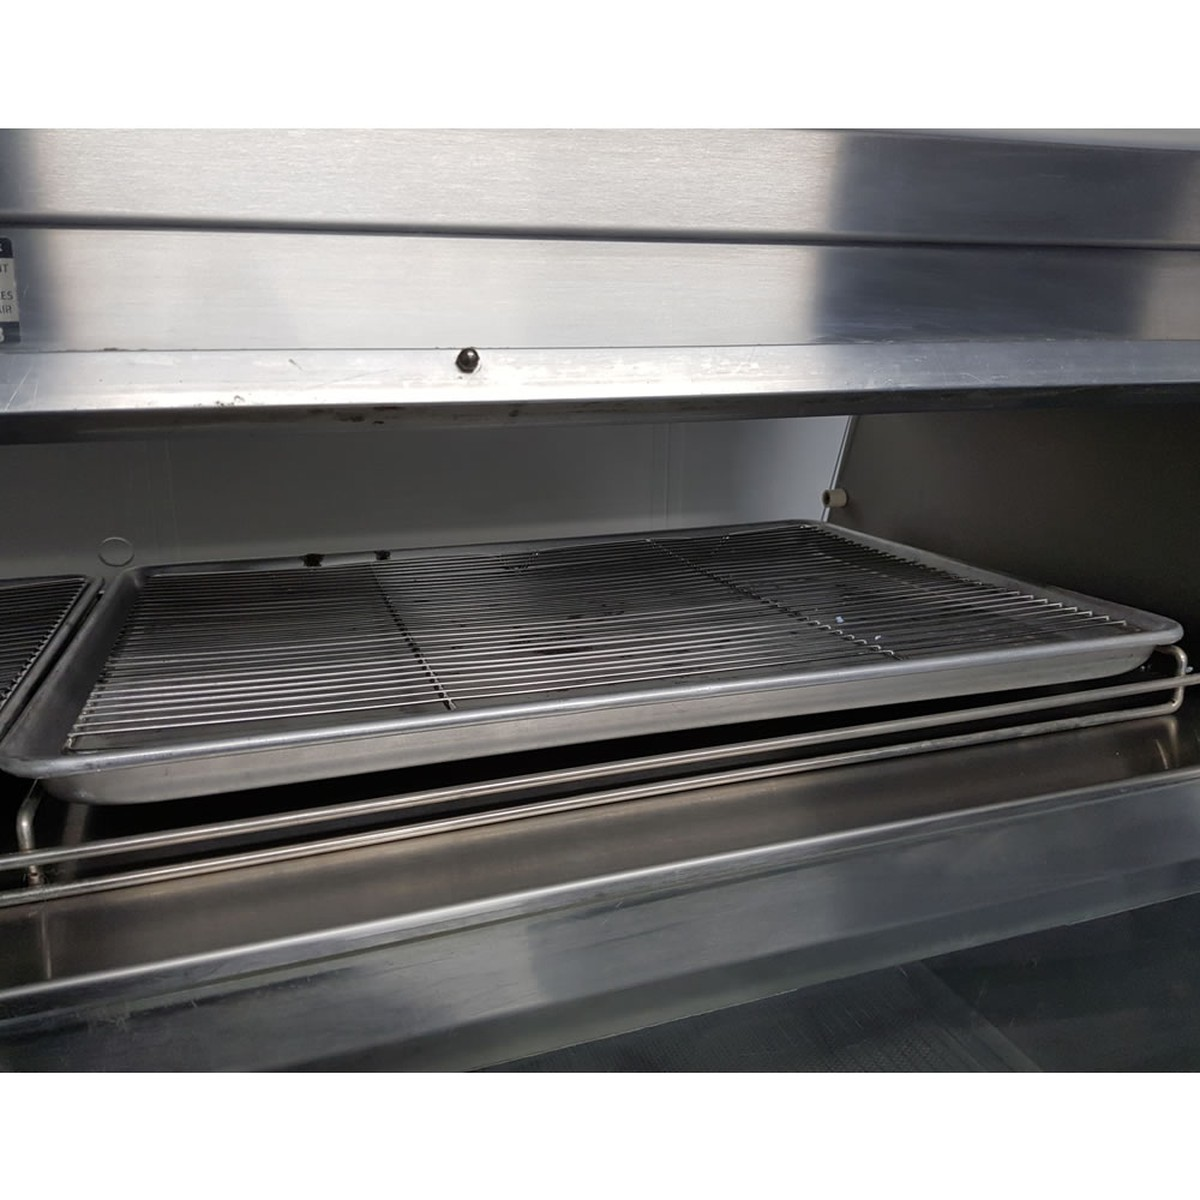 ... Chicken display cabinet ...  sc 1 st  Secondhand Shop Equipment & Secondhand Shop Equipment | Heated Display | Used Henny Penny ...